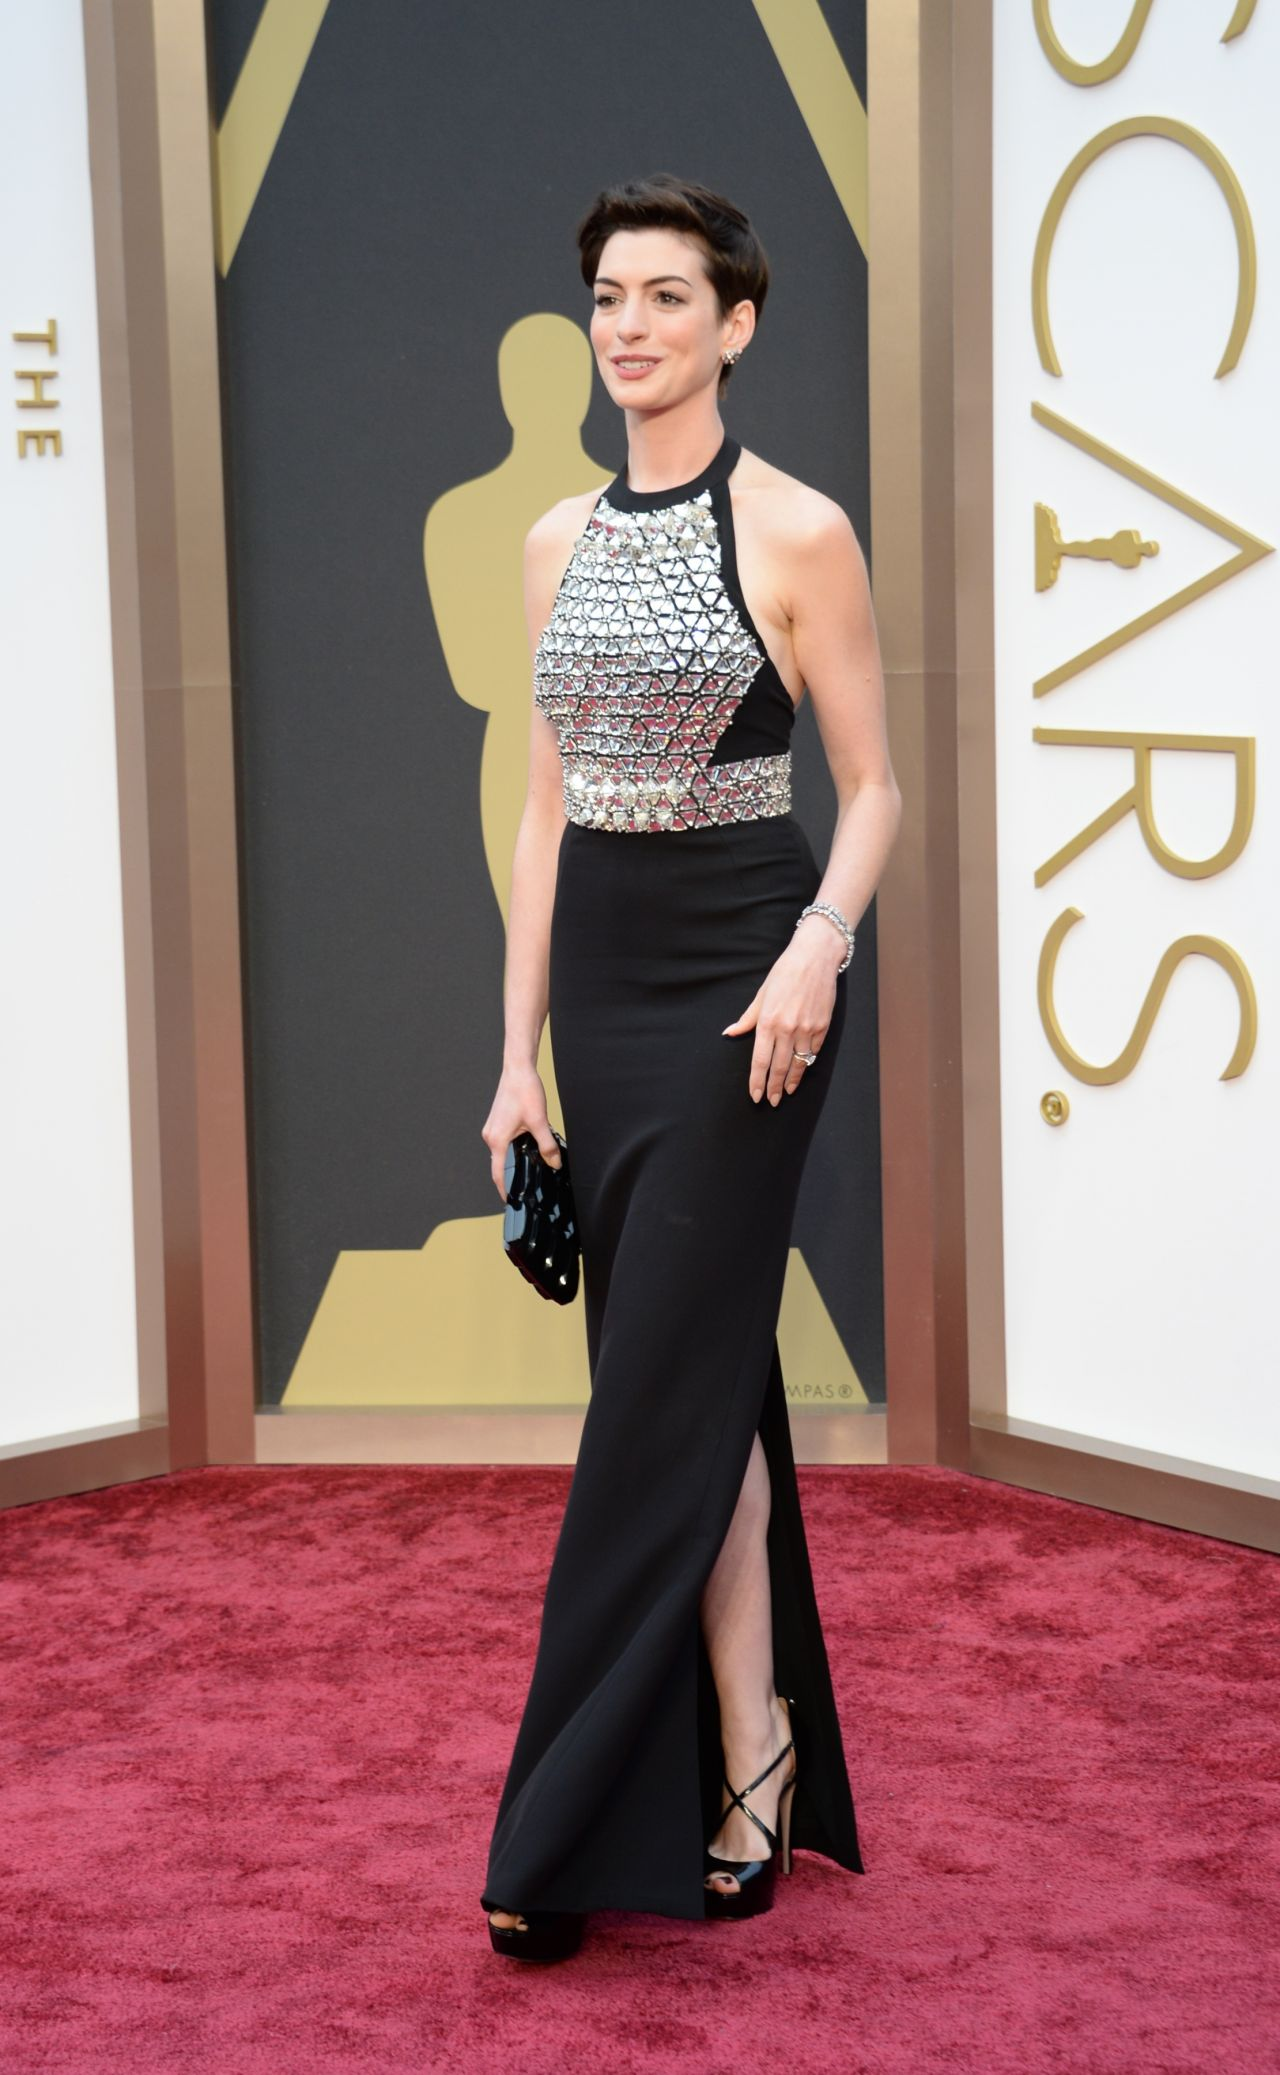 anne hathaway wearing gucci gown